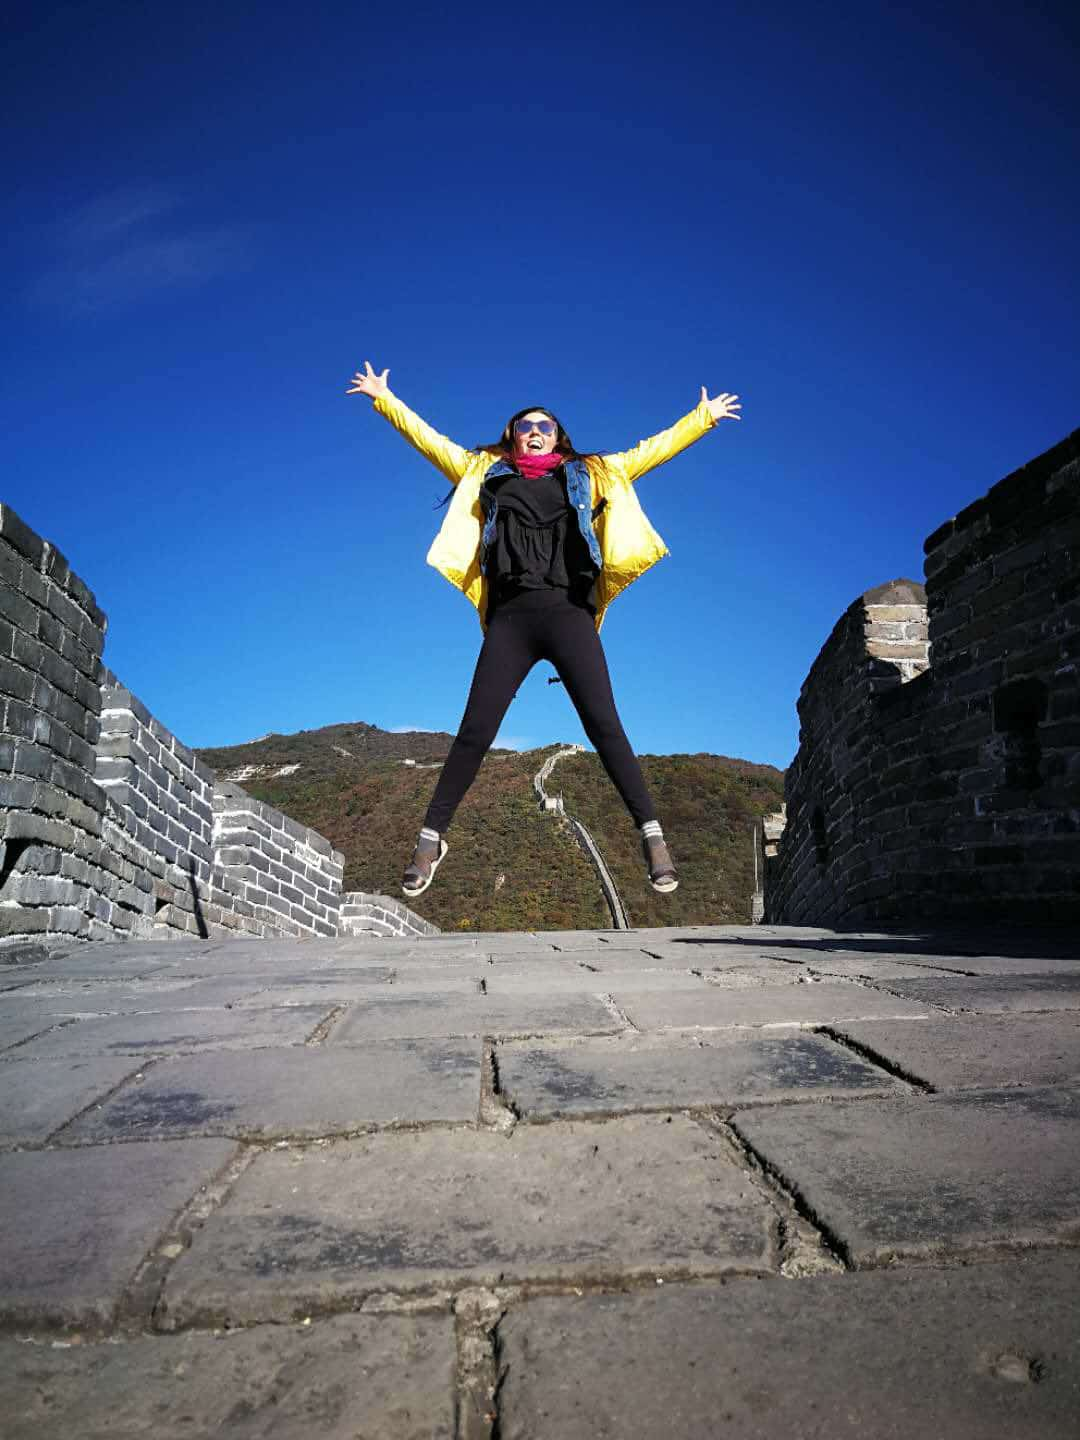 China Visa Layover. Jumping on the Great Wall of China on Beijing Layover to Great Wall of China